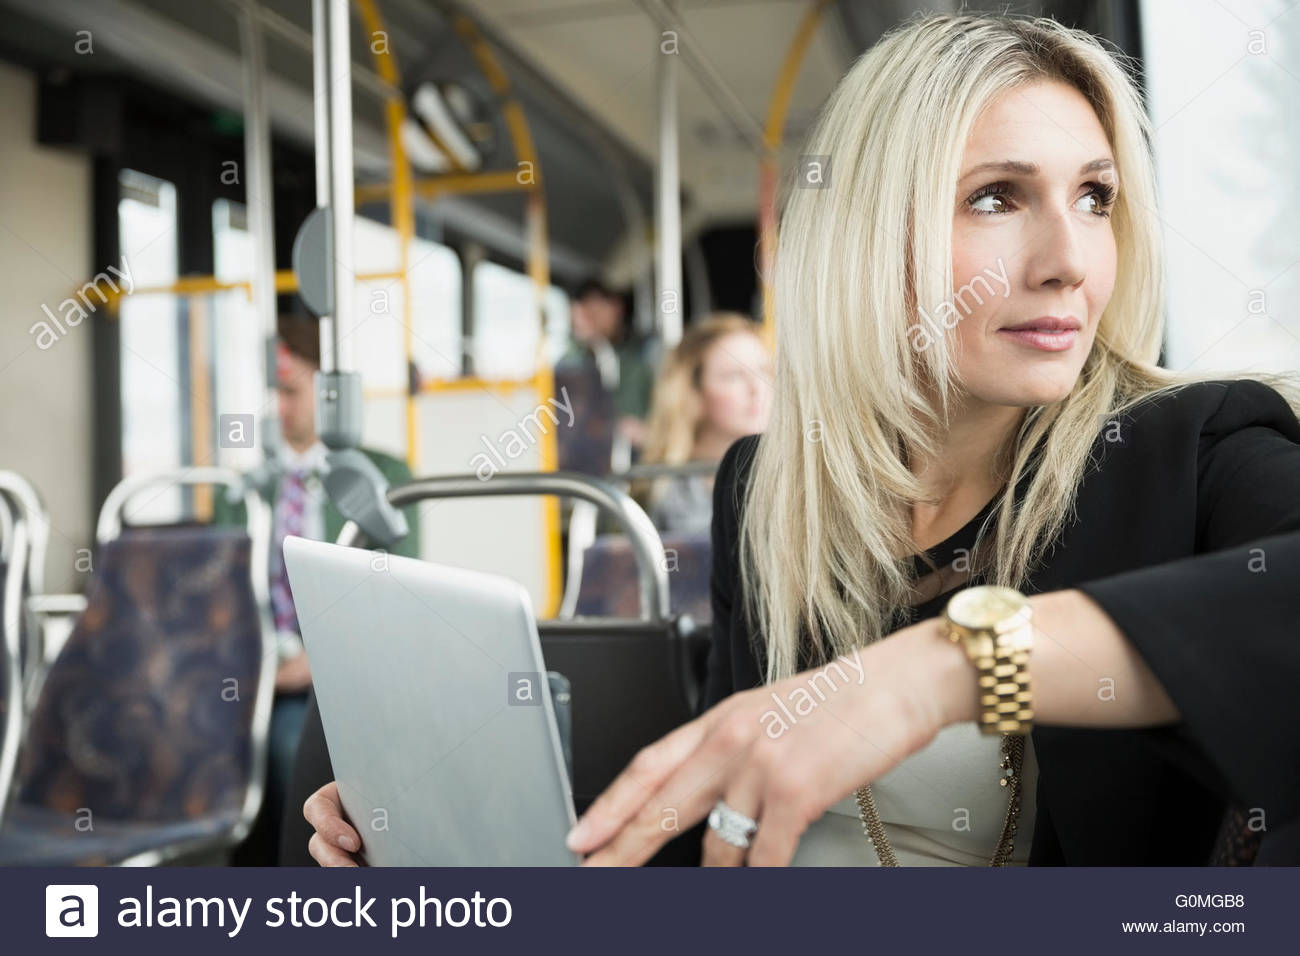 Pensive businesswoman using laptop on bus looking away - Stock Image